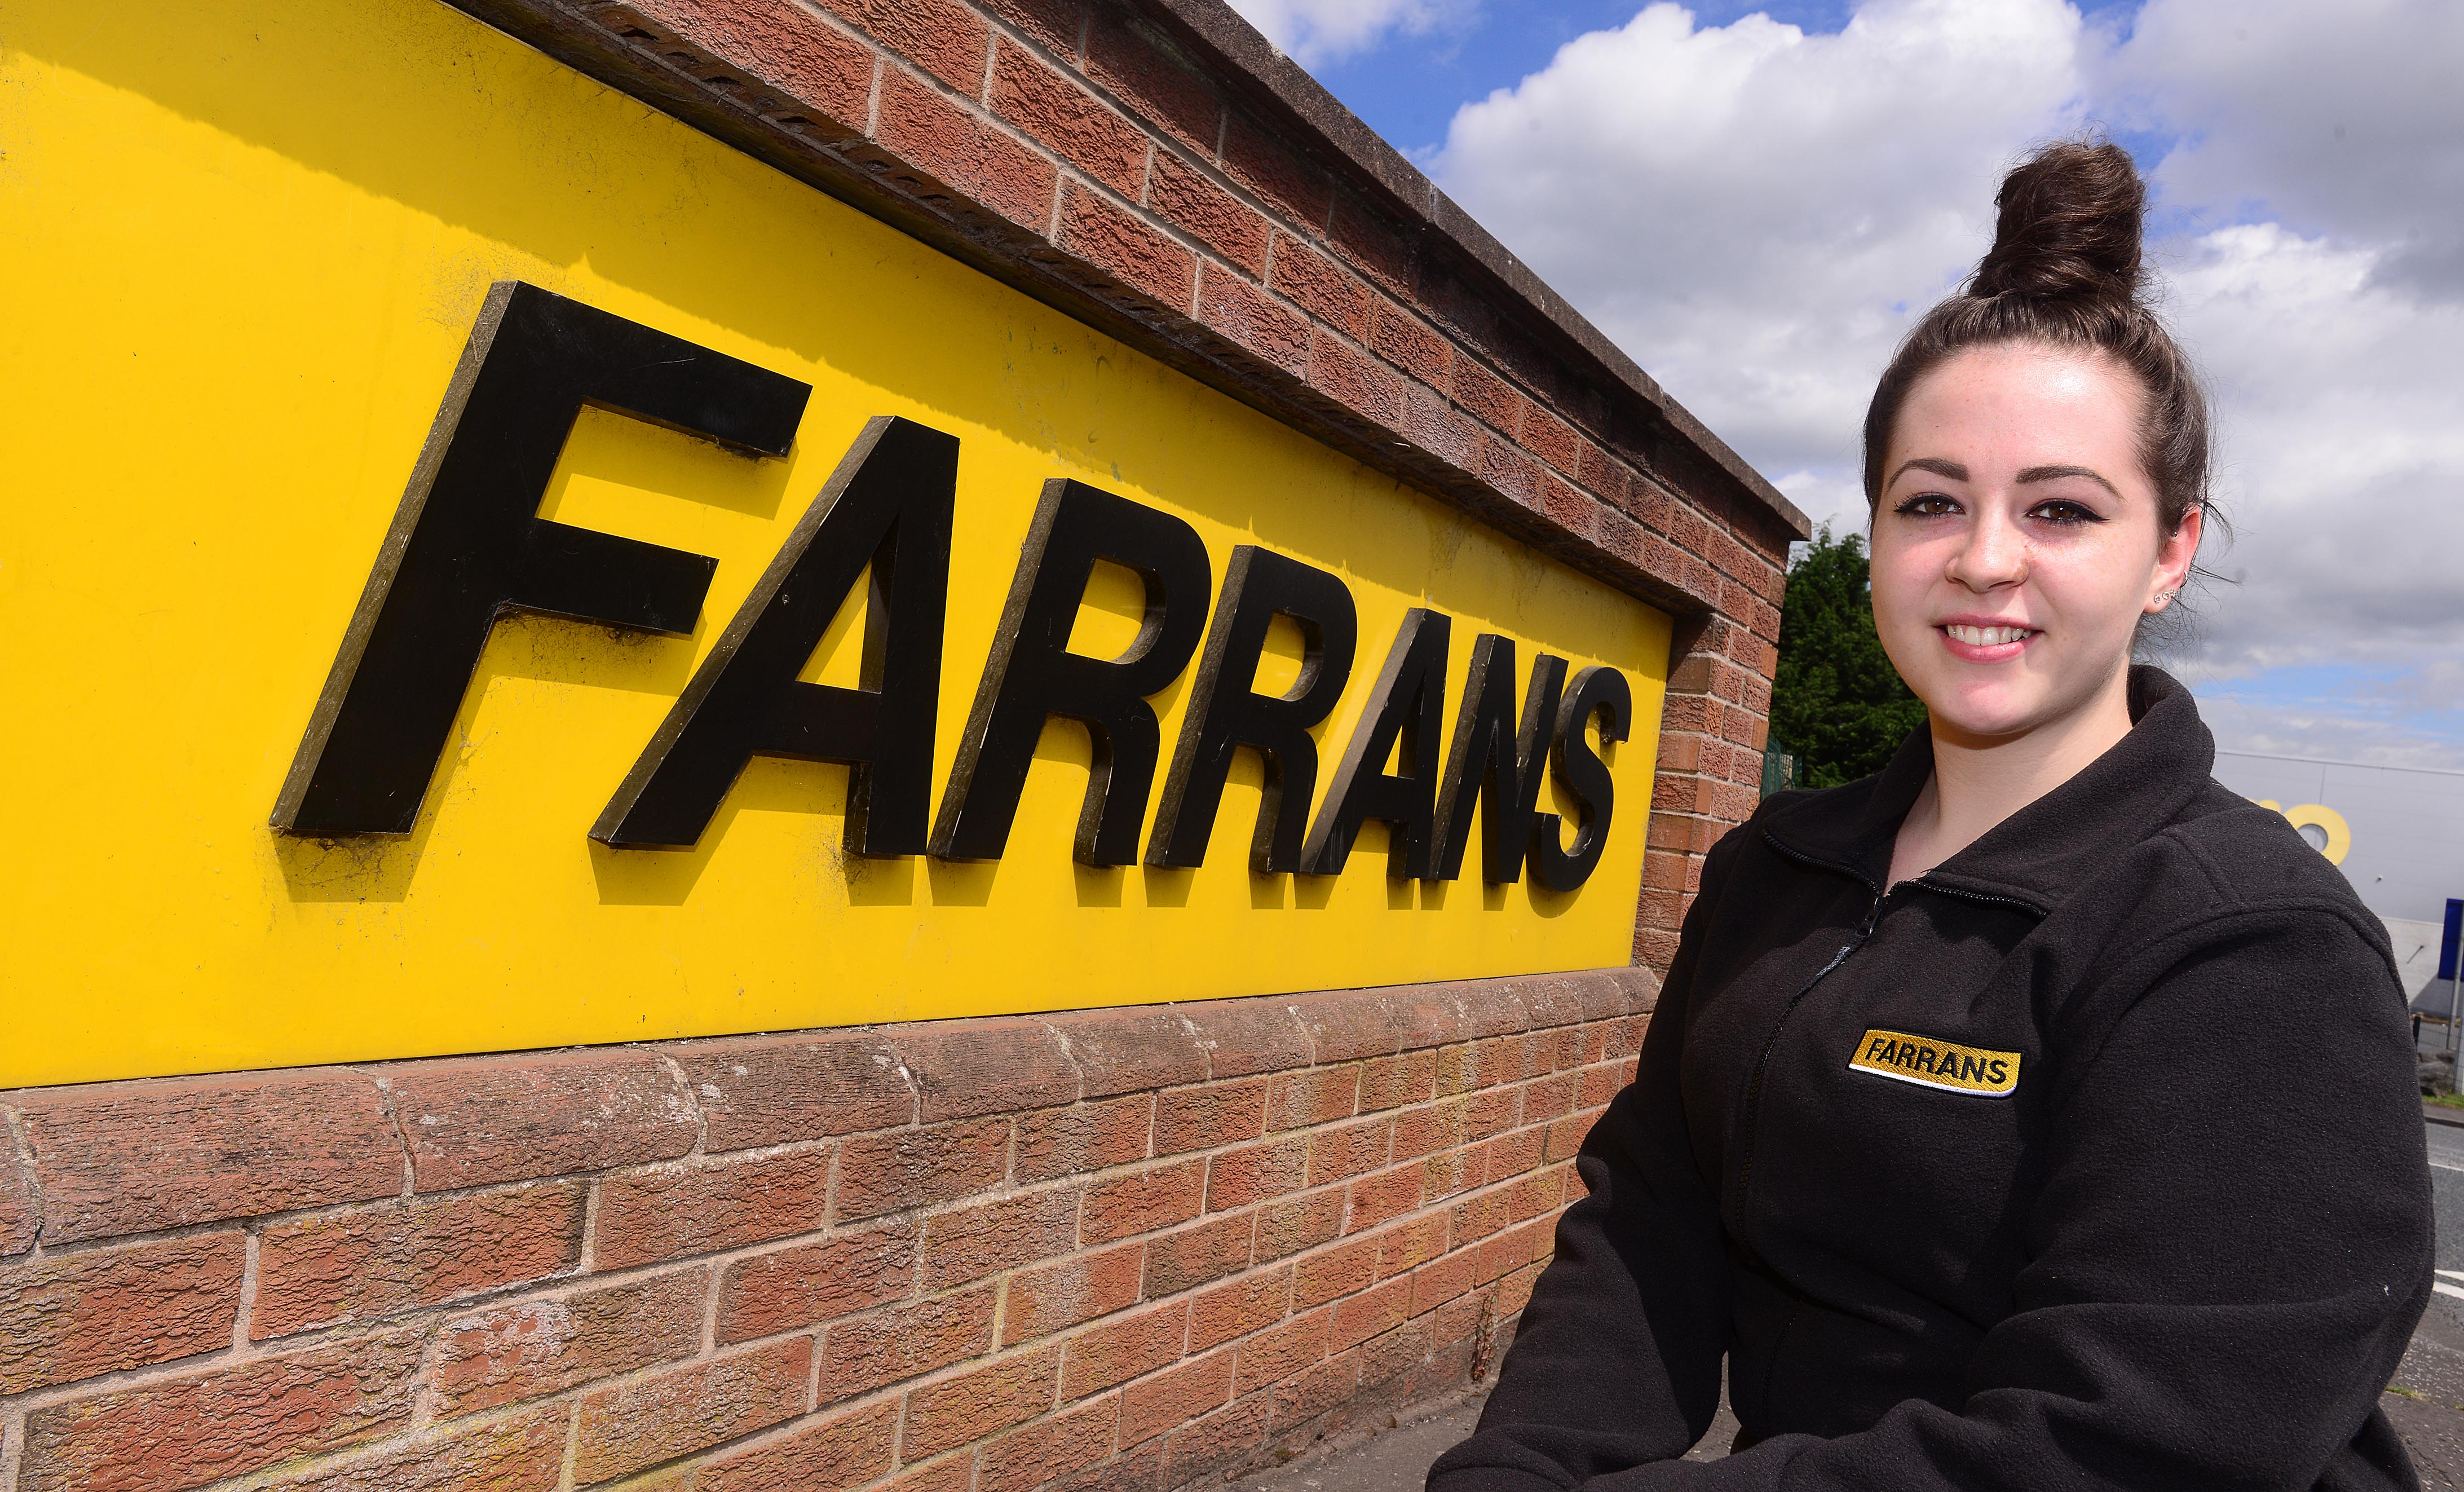 Lauren Dream Jobs With Farrans